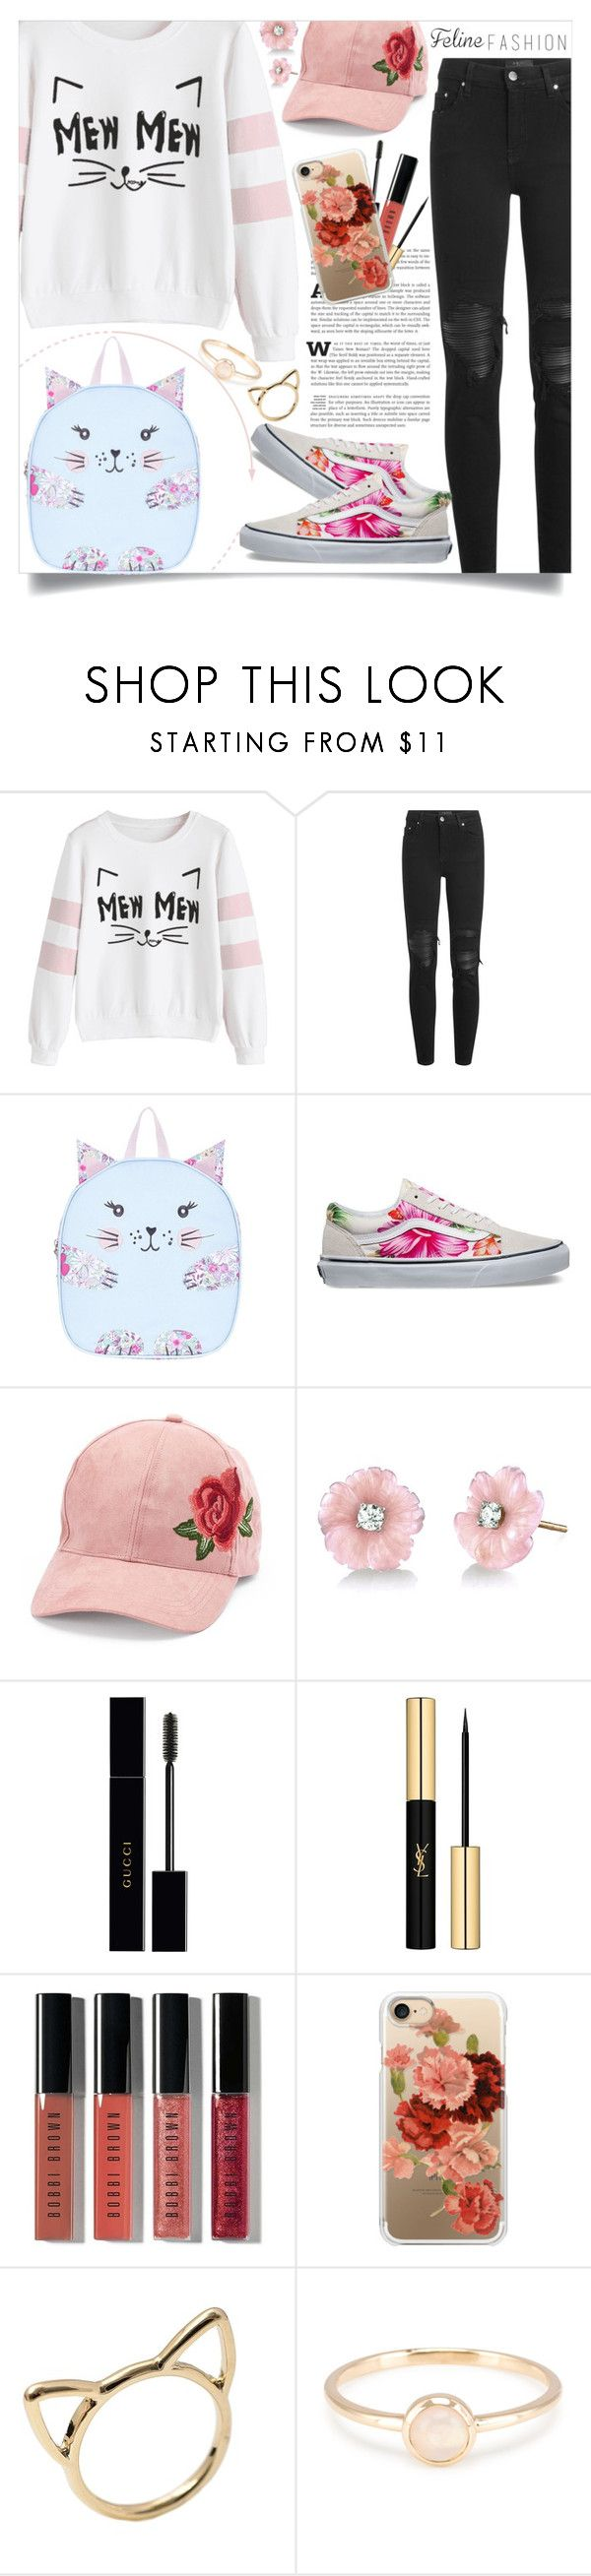 """""""Valentin Bossio - Feline Fashion"""" by valentin-bossio ❤ liked on Polyvore featuring AMIRI, Monsoon, Vans, David & Young, Irene Neuwirth, Gucci, Yves Saint Laurent, Bobbi Brown Cosmetics and Casetify"""